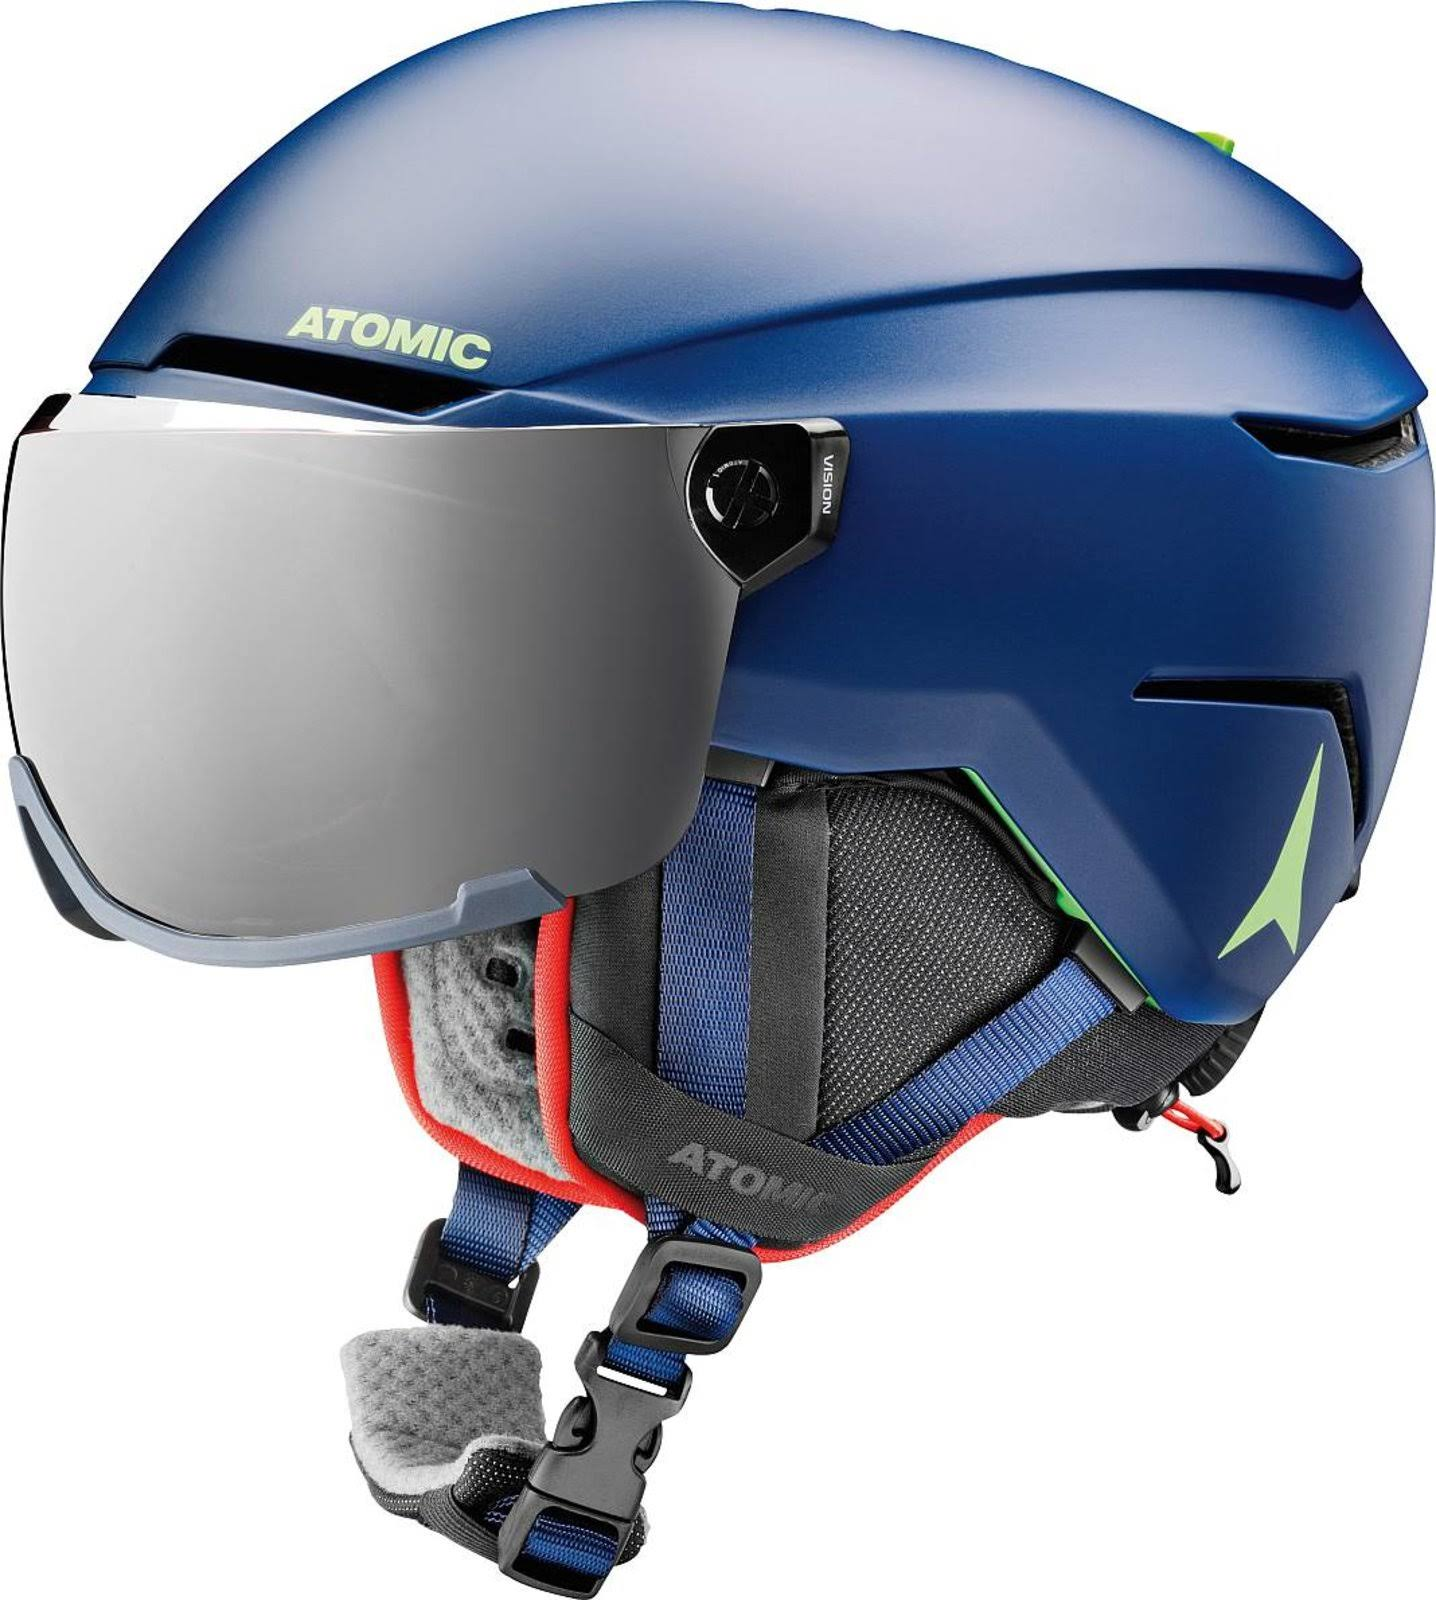 Atomic Savor Visor Jr Helmet - Youth